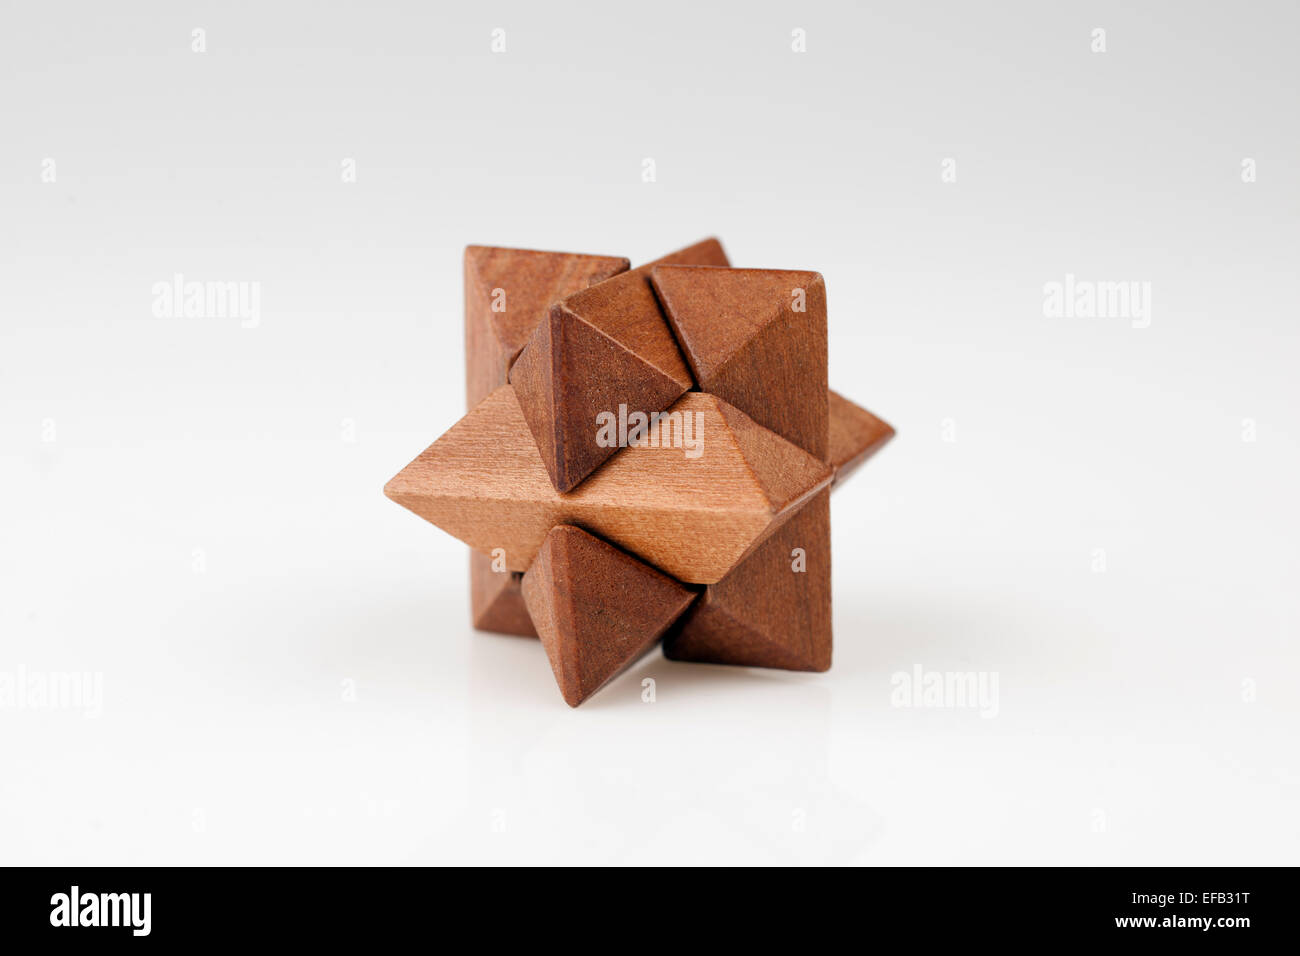 Wood puzzle in the shape of a star - Stock Image